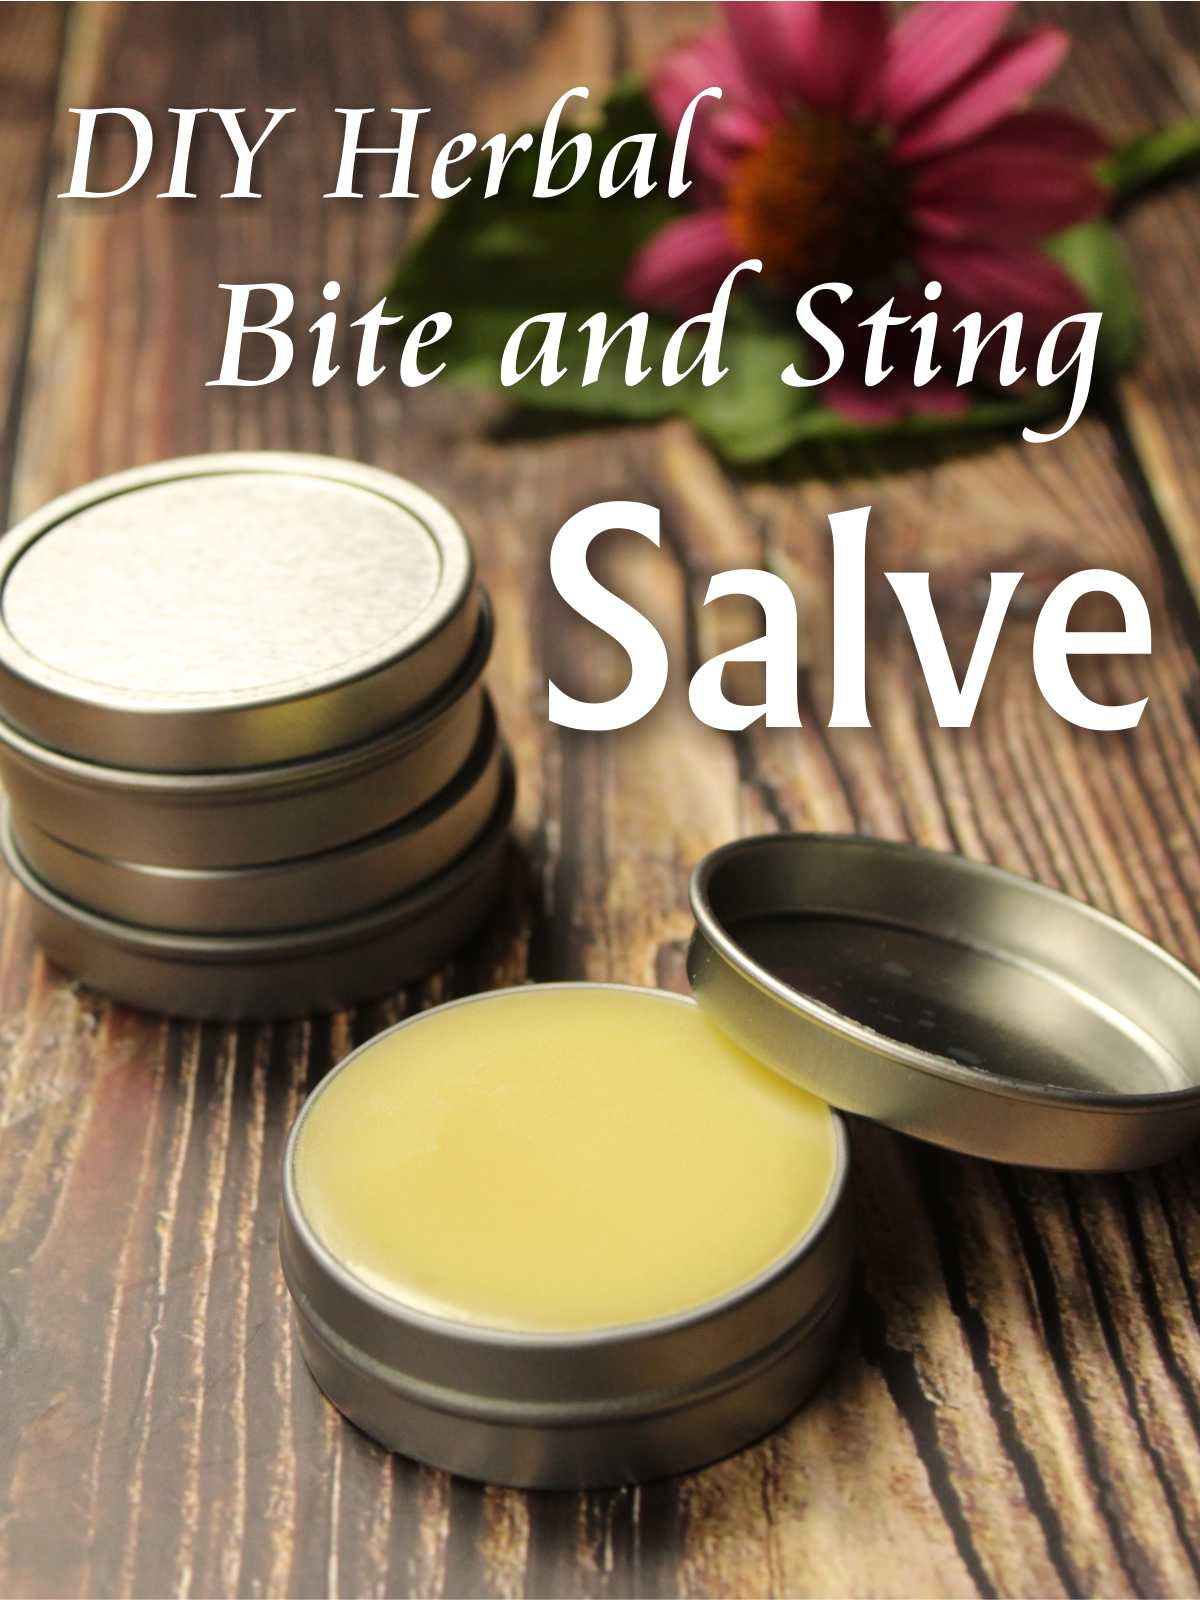 DIY herbal bite and sting salve is the perfect antidote to the inevitable summertime assaults on delicate skin!